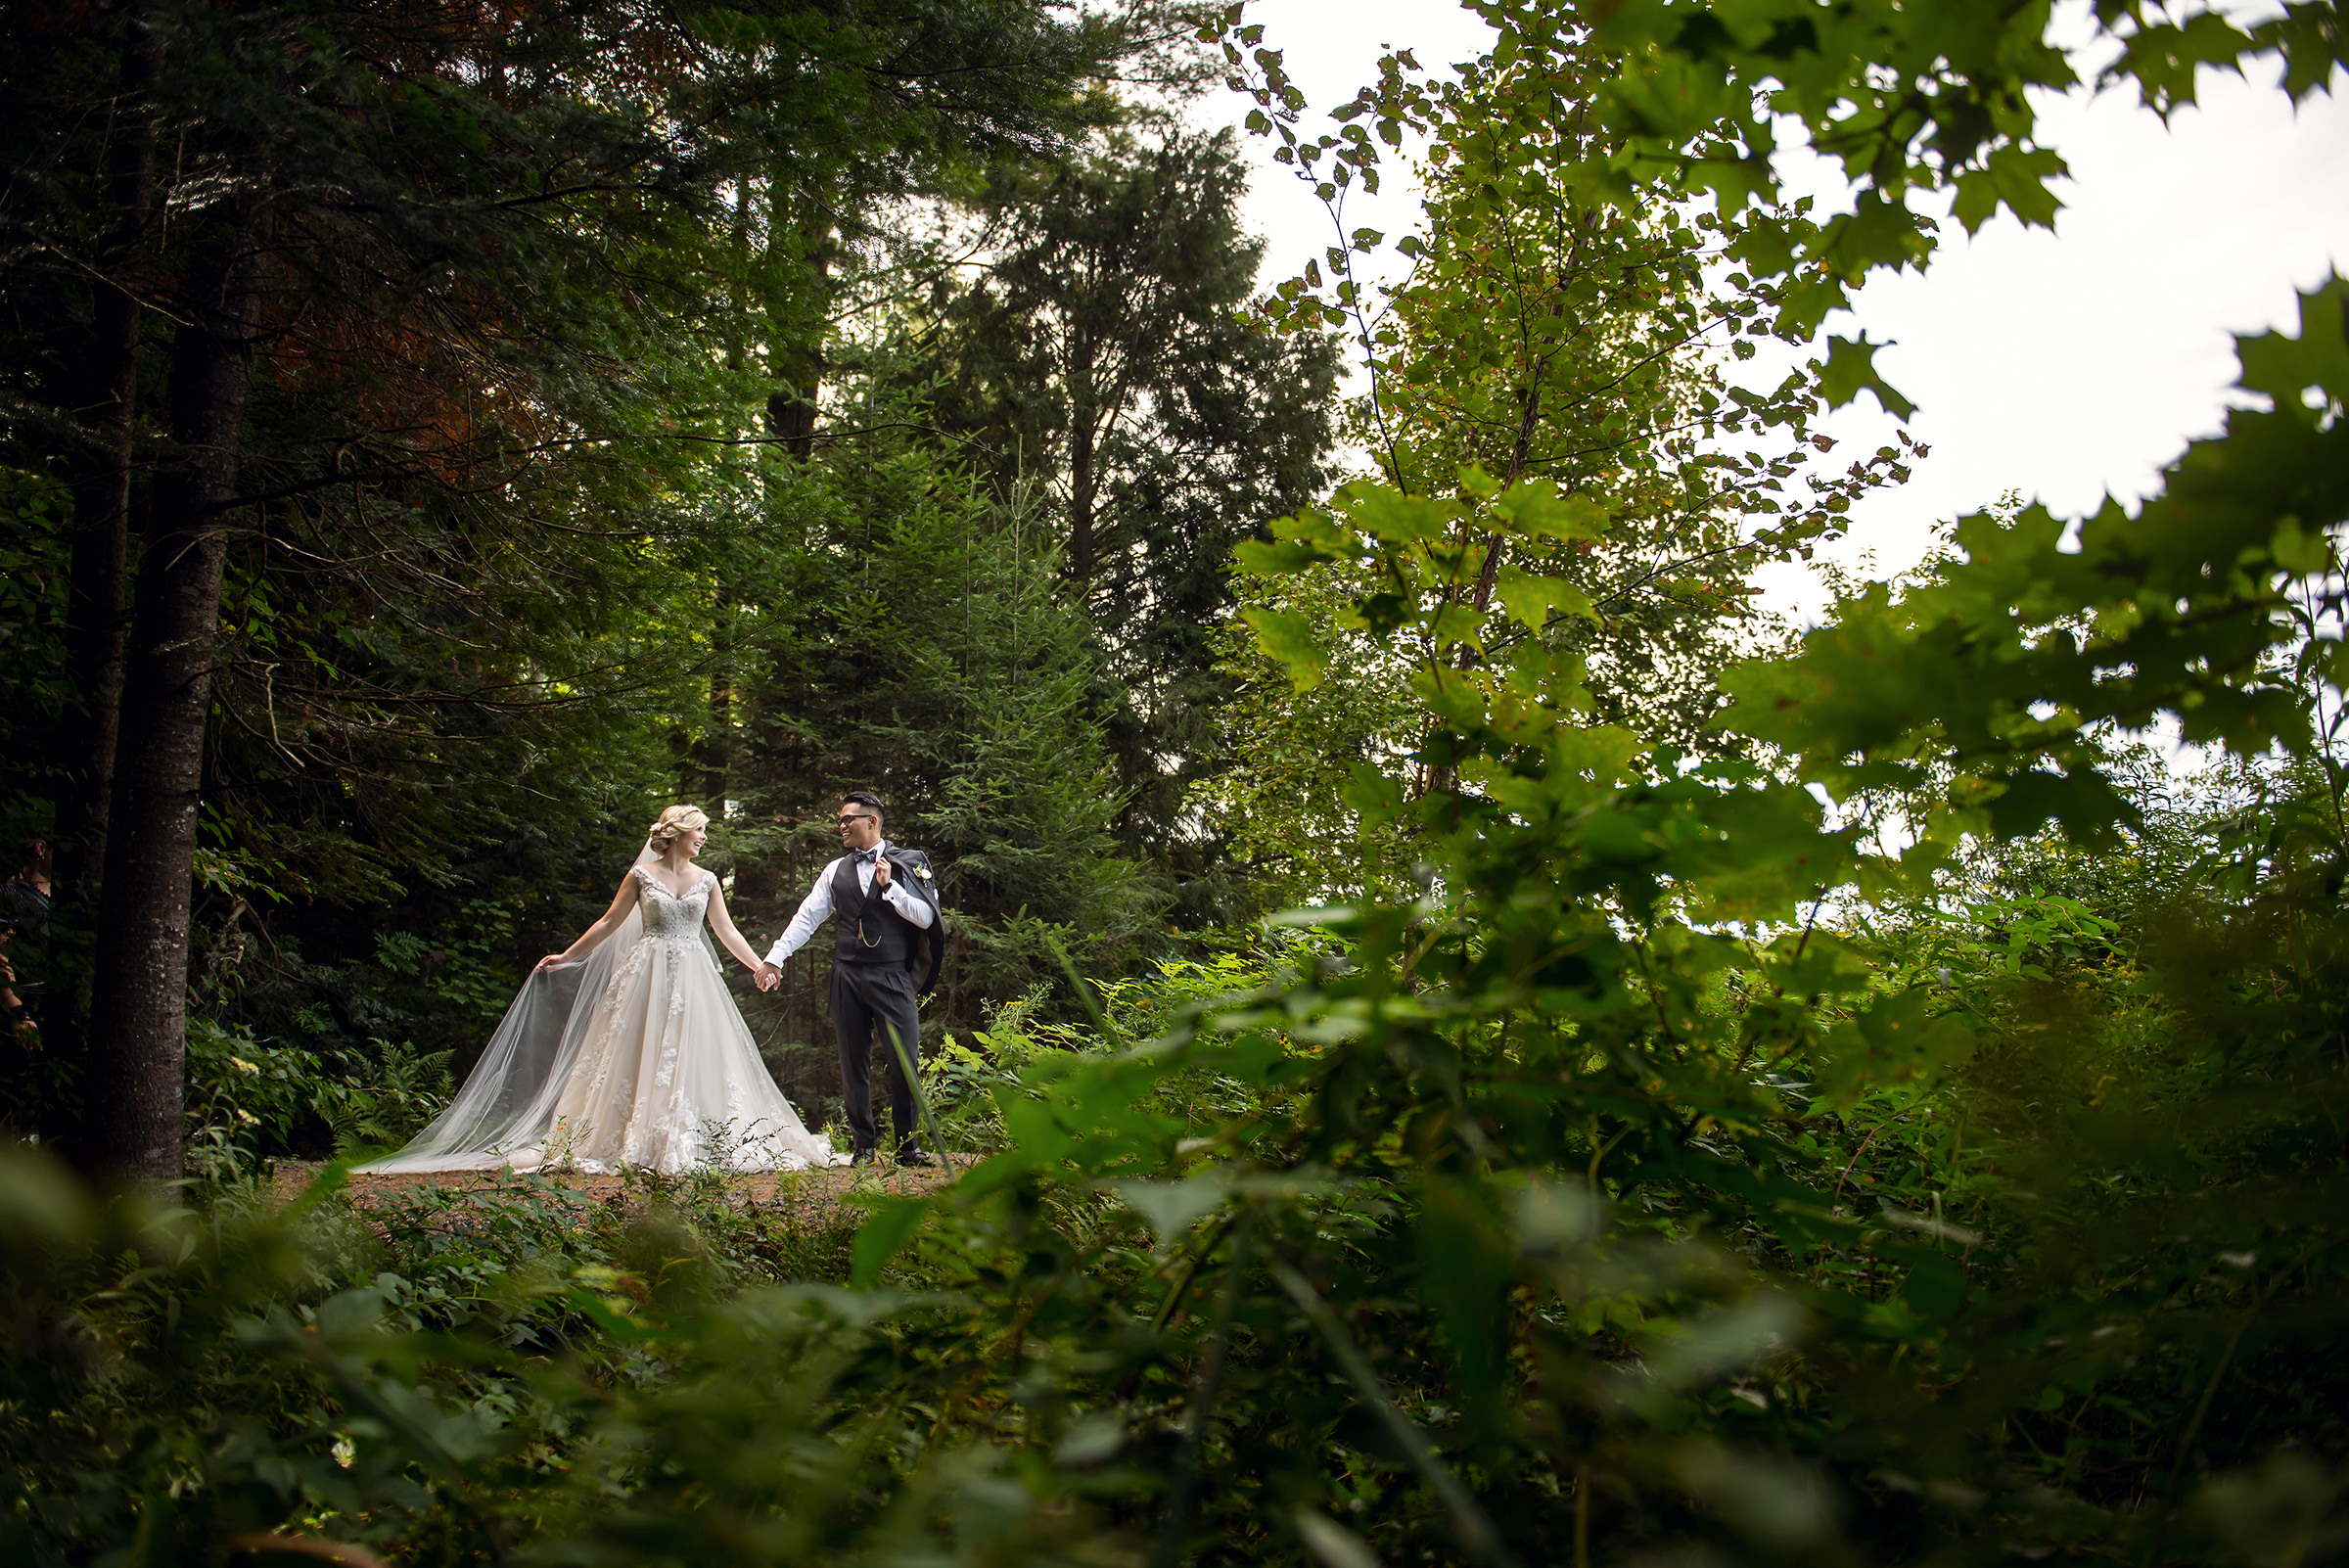 Fairytale bride with groom in forest setting - photo by David & Sherry Photography